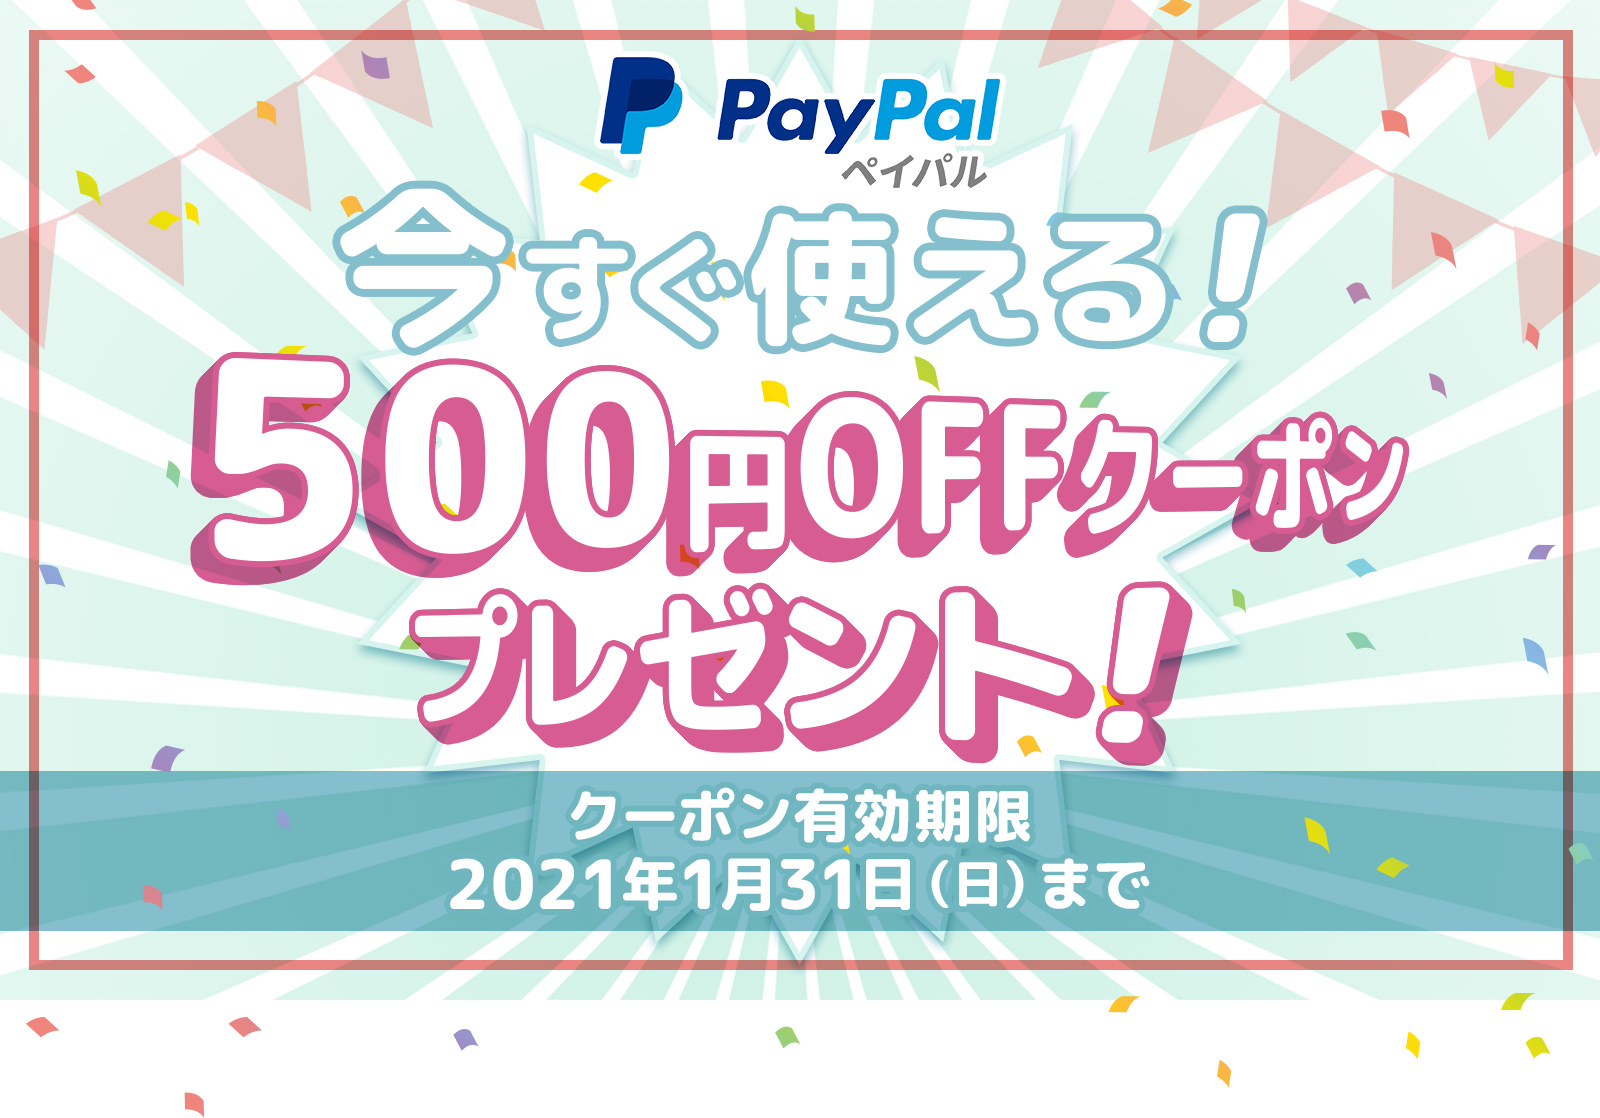 PayPal 今すぐ使える!500円OFFクーポンプレゼント!